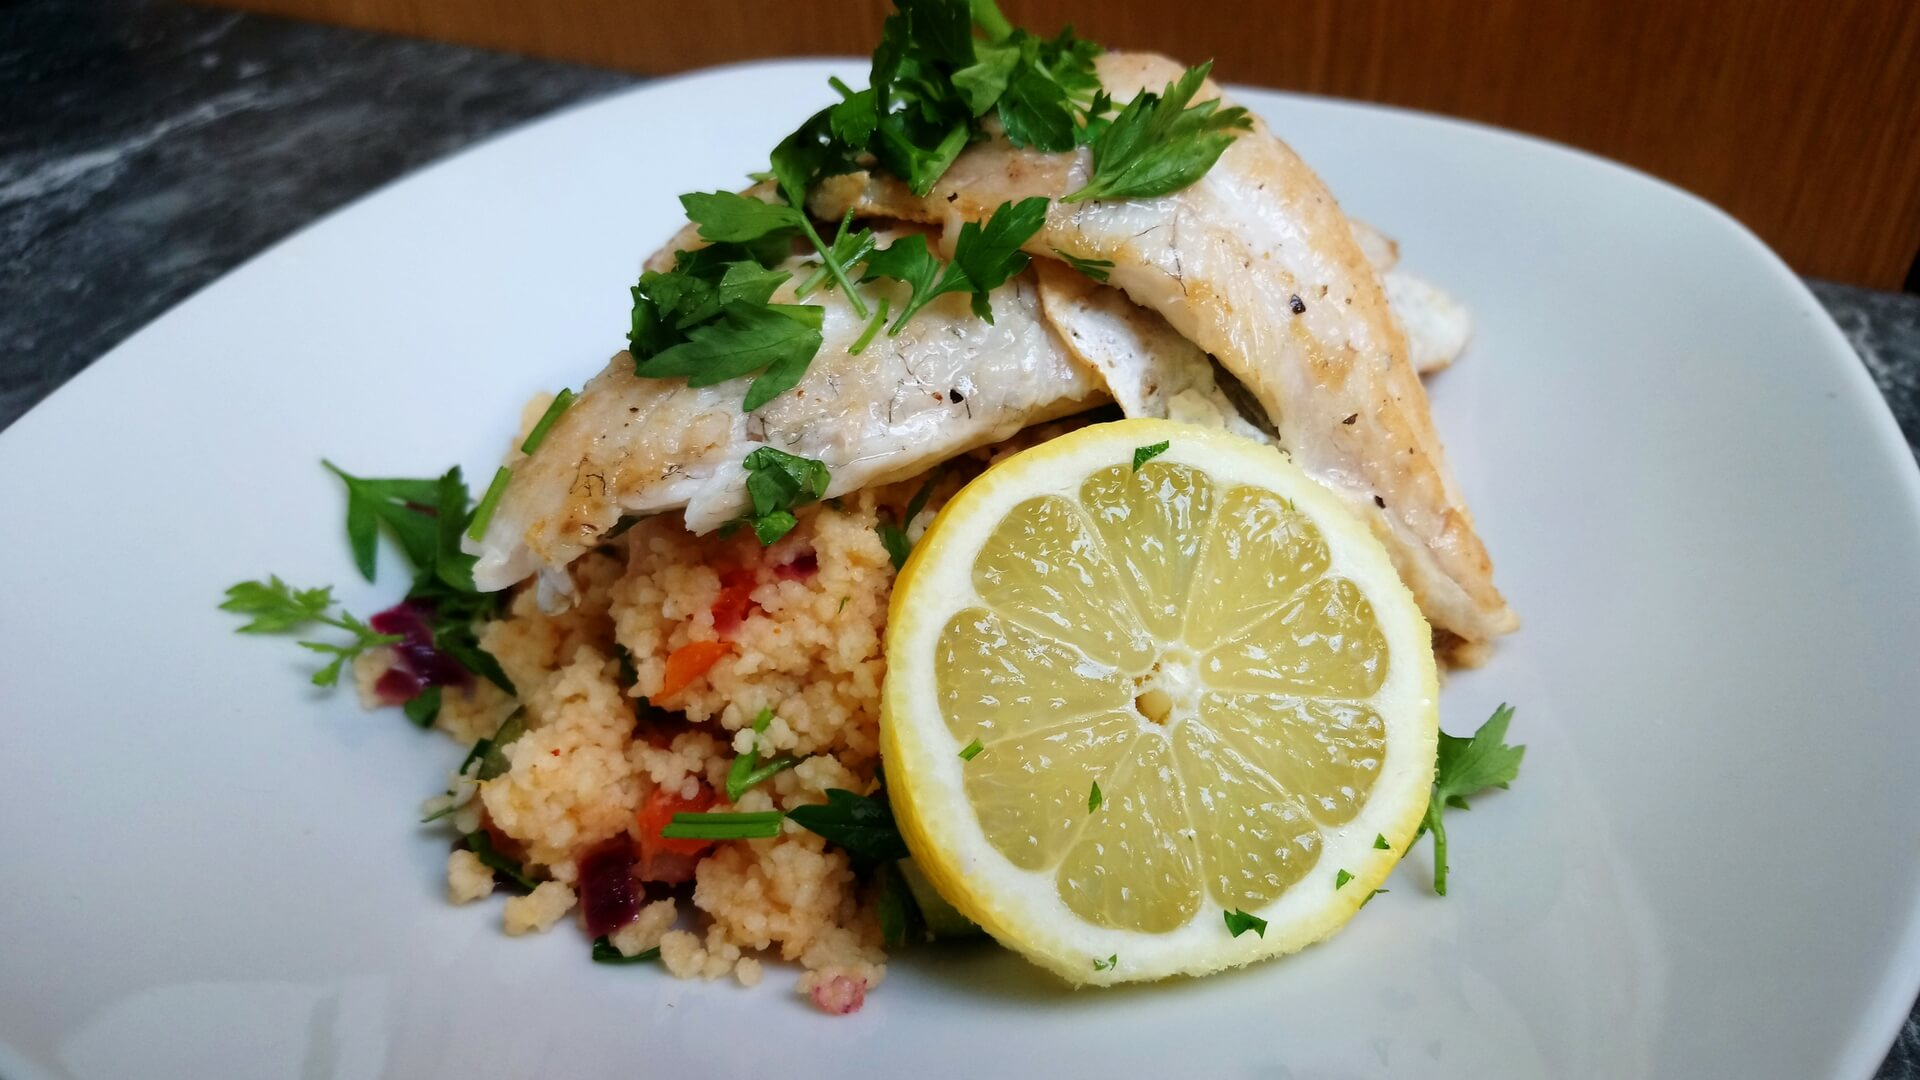 Pan fried sea bass with couscous